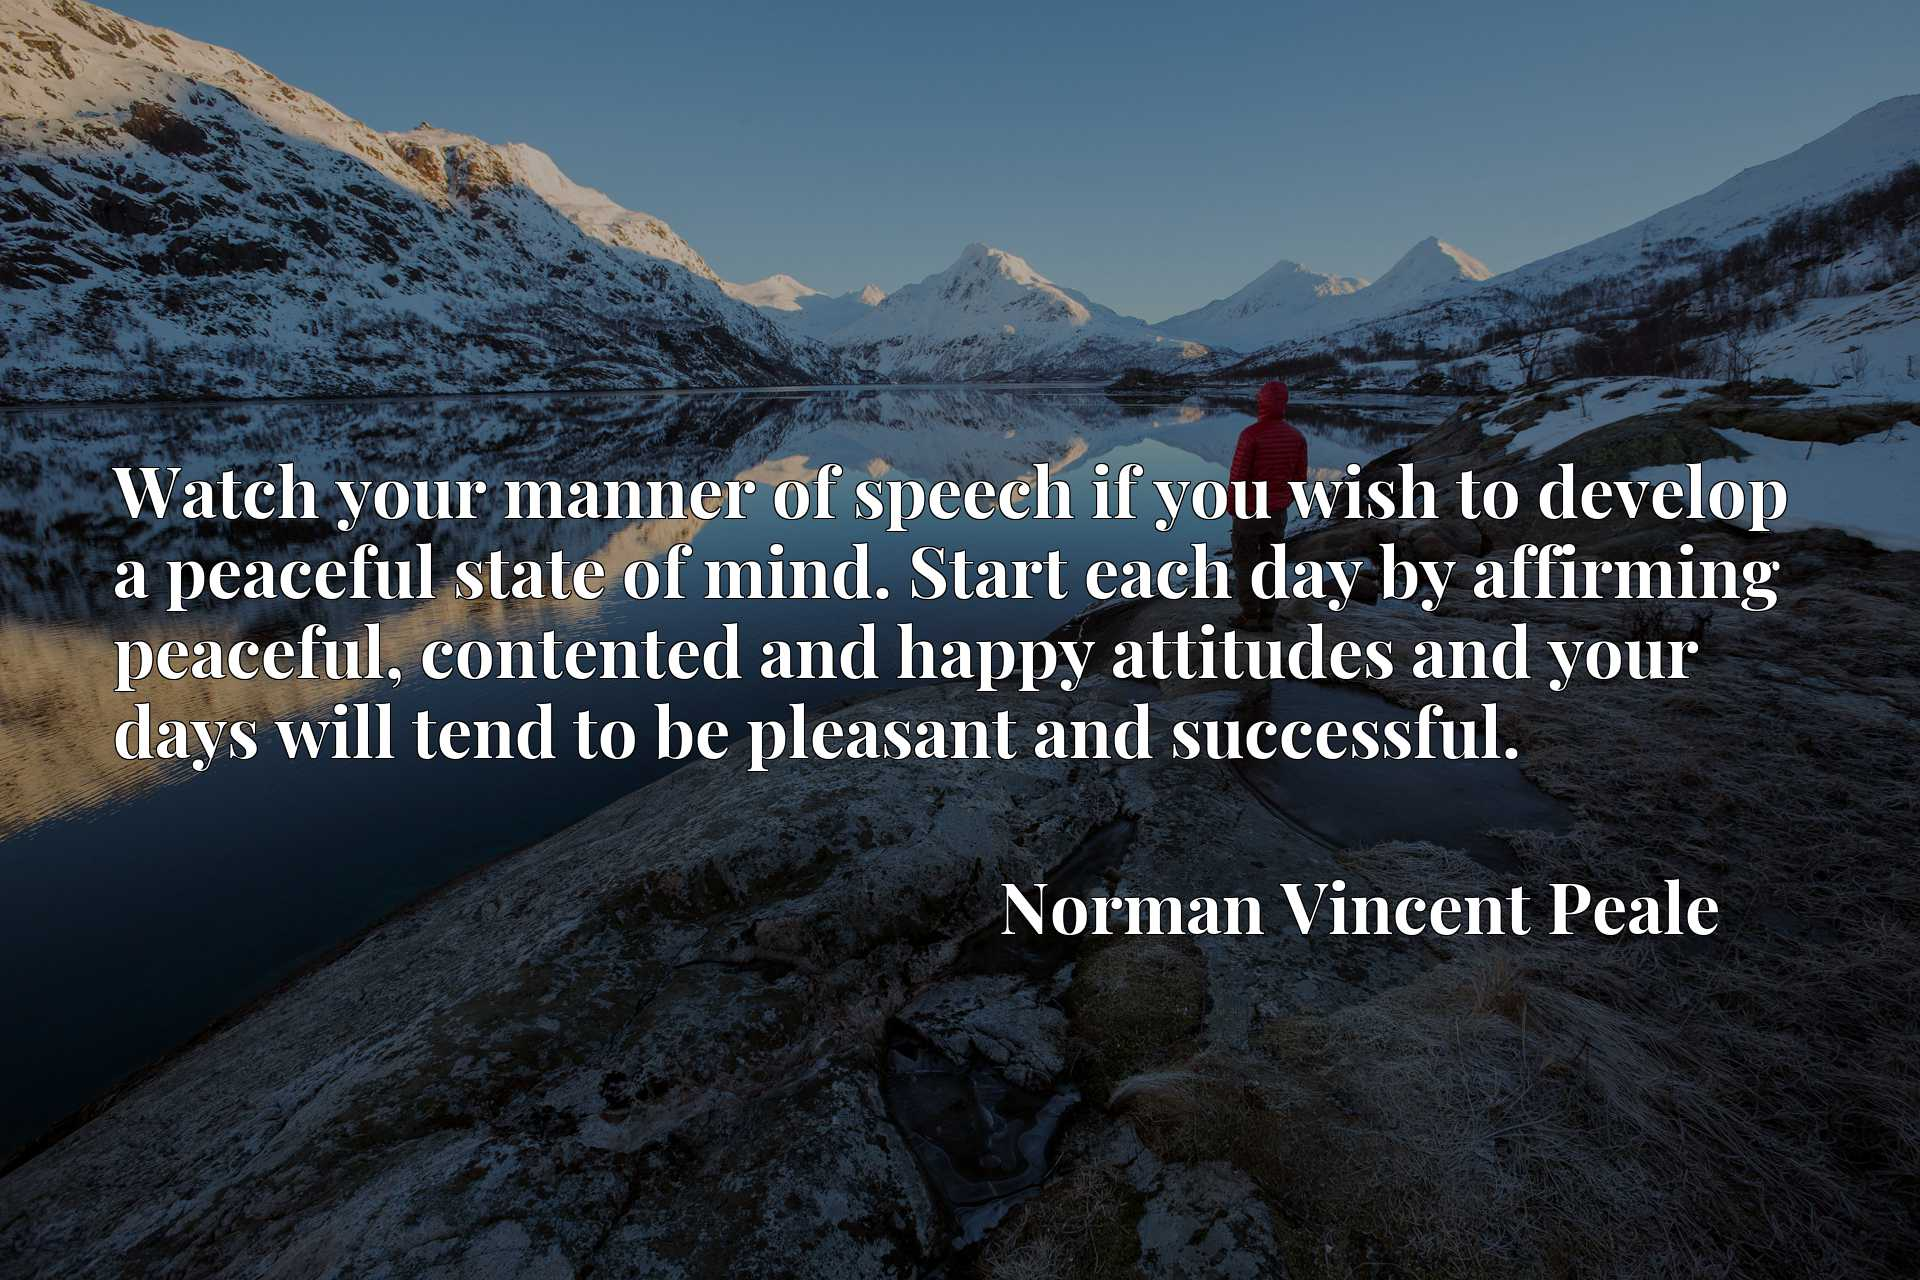 Watch your manner of speech if you wish to develop a peaceful state of mind. Start each day by affirming peaceful, contented and happy attitudes and your days will tend to be pleasant and successful.